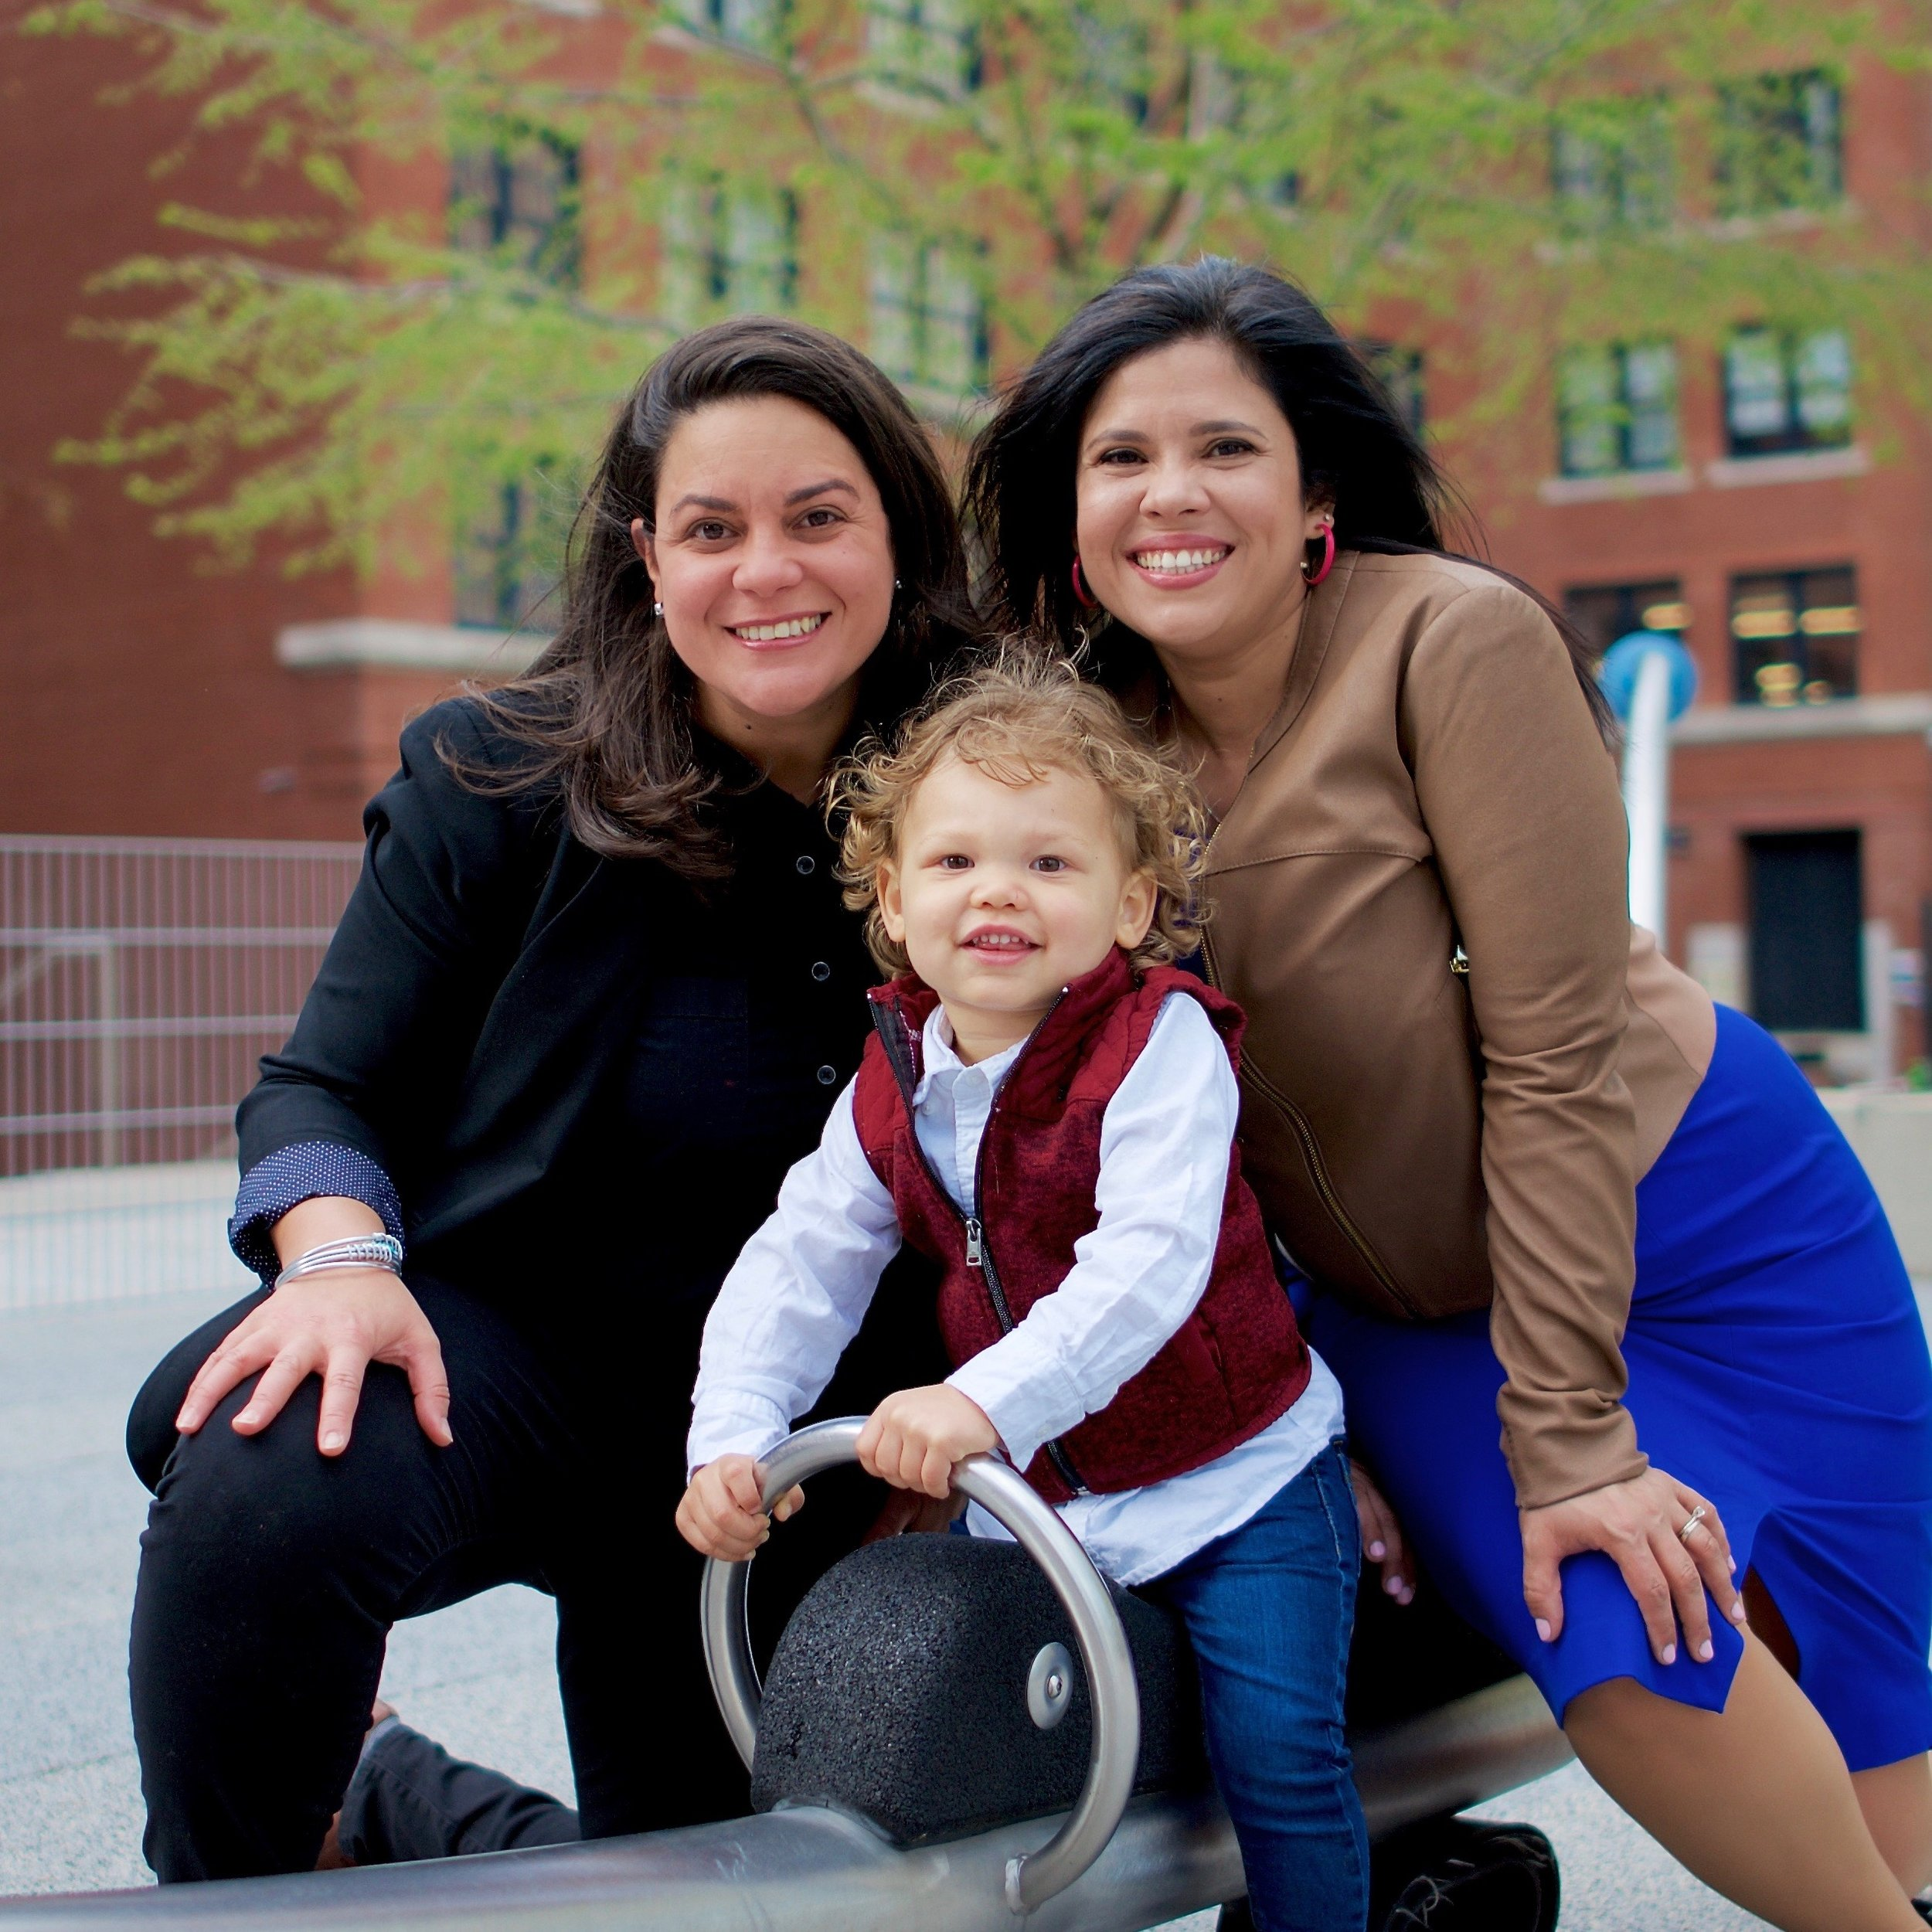 Alejandra St. Guillen (right) and Josiane Martinez (her wife) and their son;  Photo: Campaign to Elect Alejandra St. Guillen